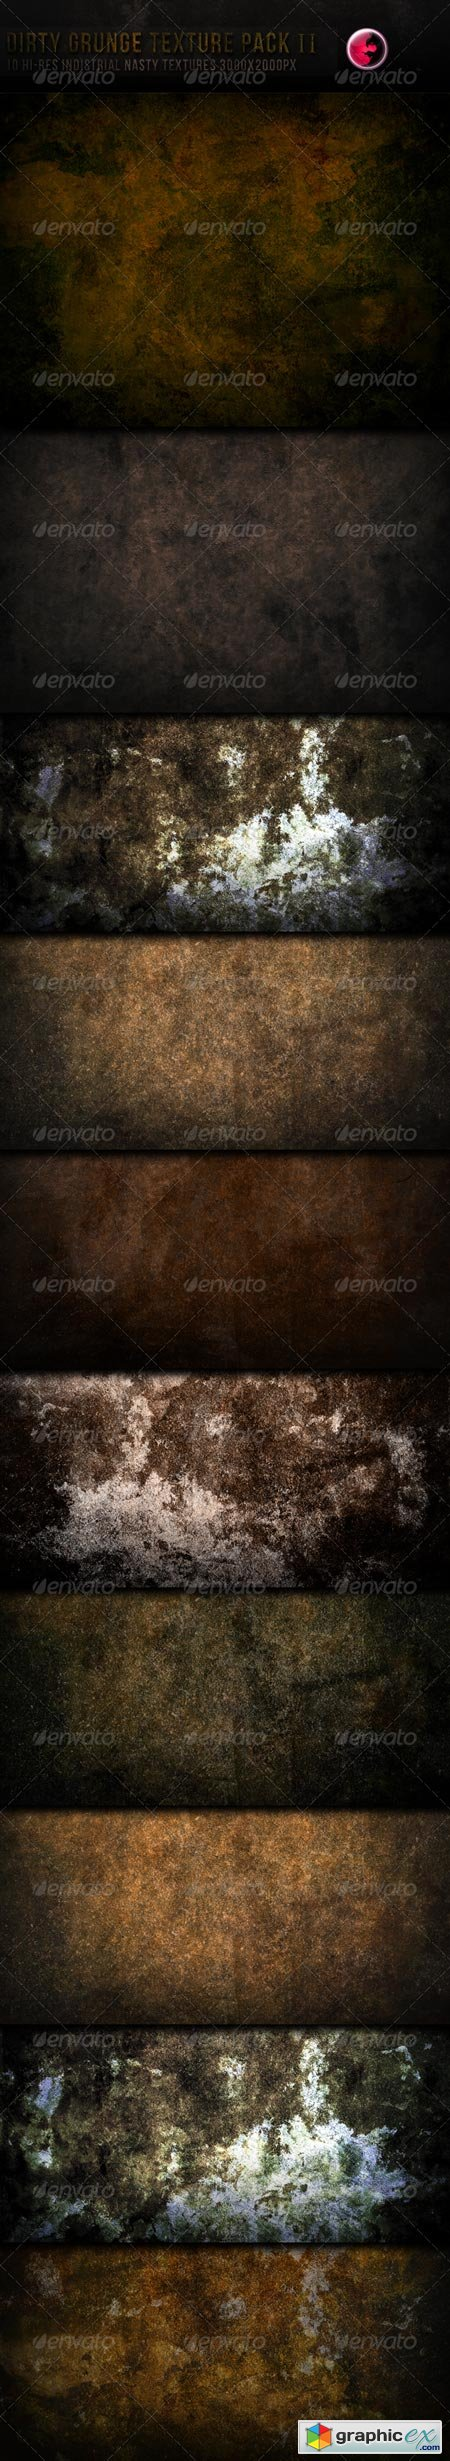 10 Hi-Res Dirty grunge texture pack-ii 240193